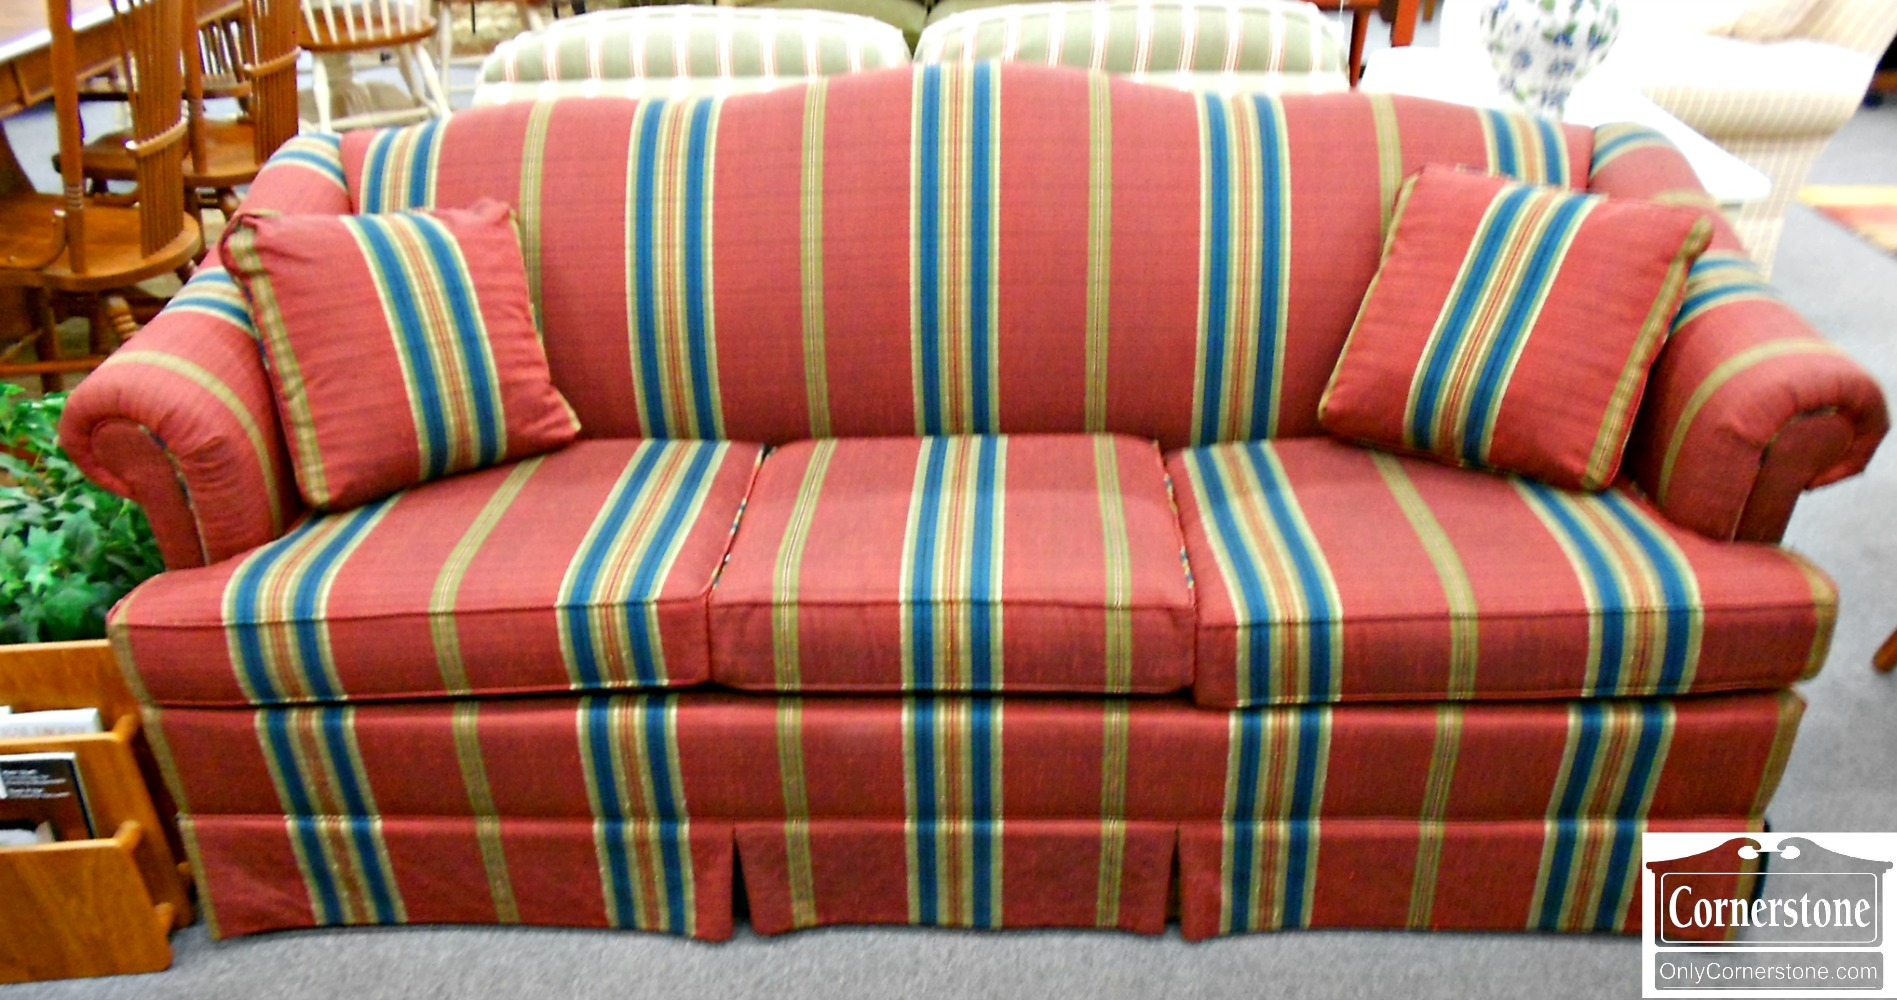 Red Striped Chair Baltimore Maryland Furniture Store Cornerstone Page 3